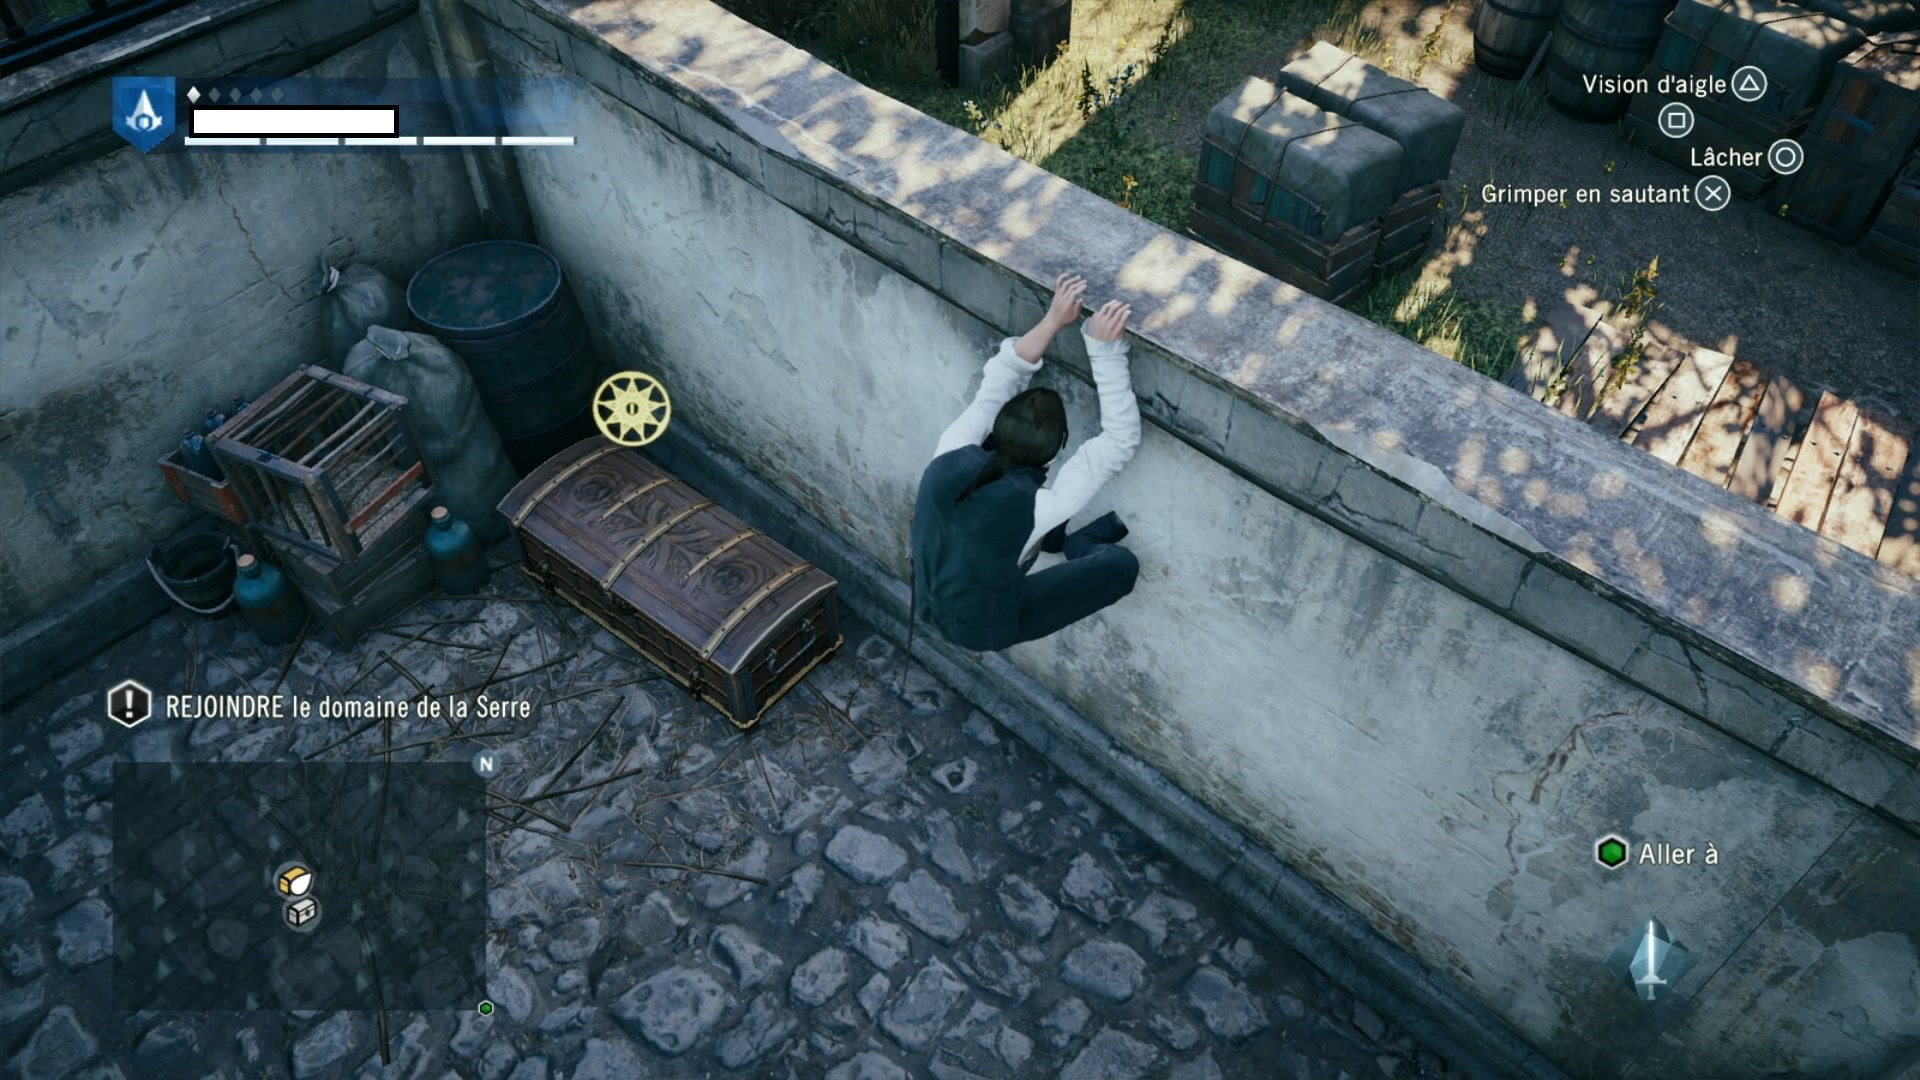 In-game obrázky z Assassin's Creed: Unity 101829